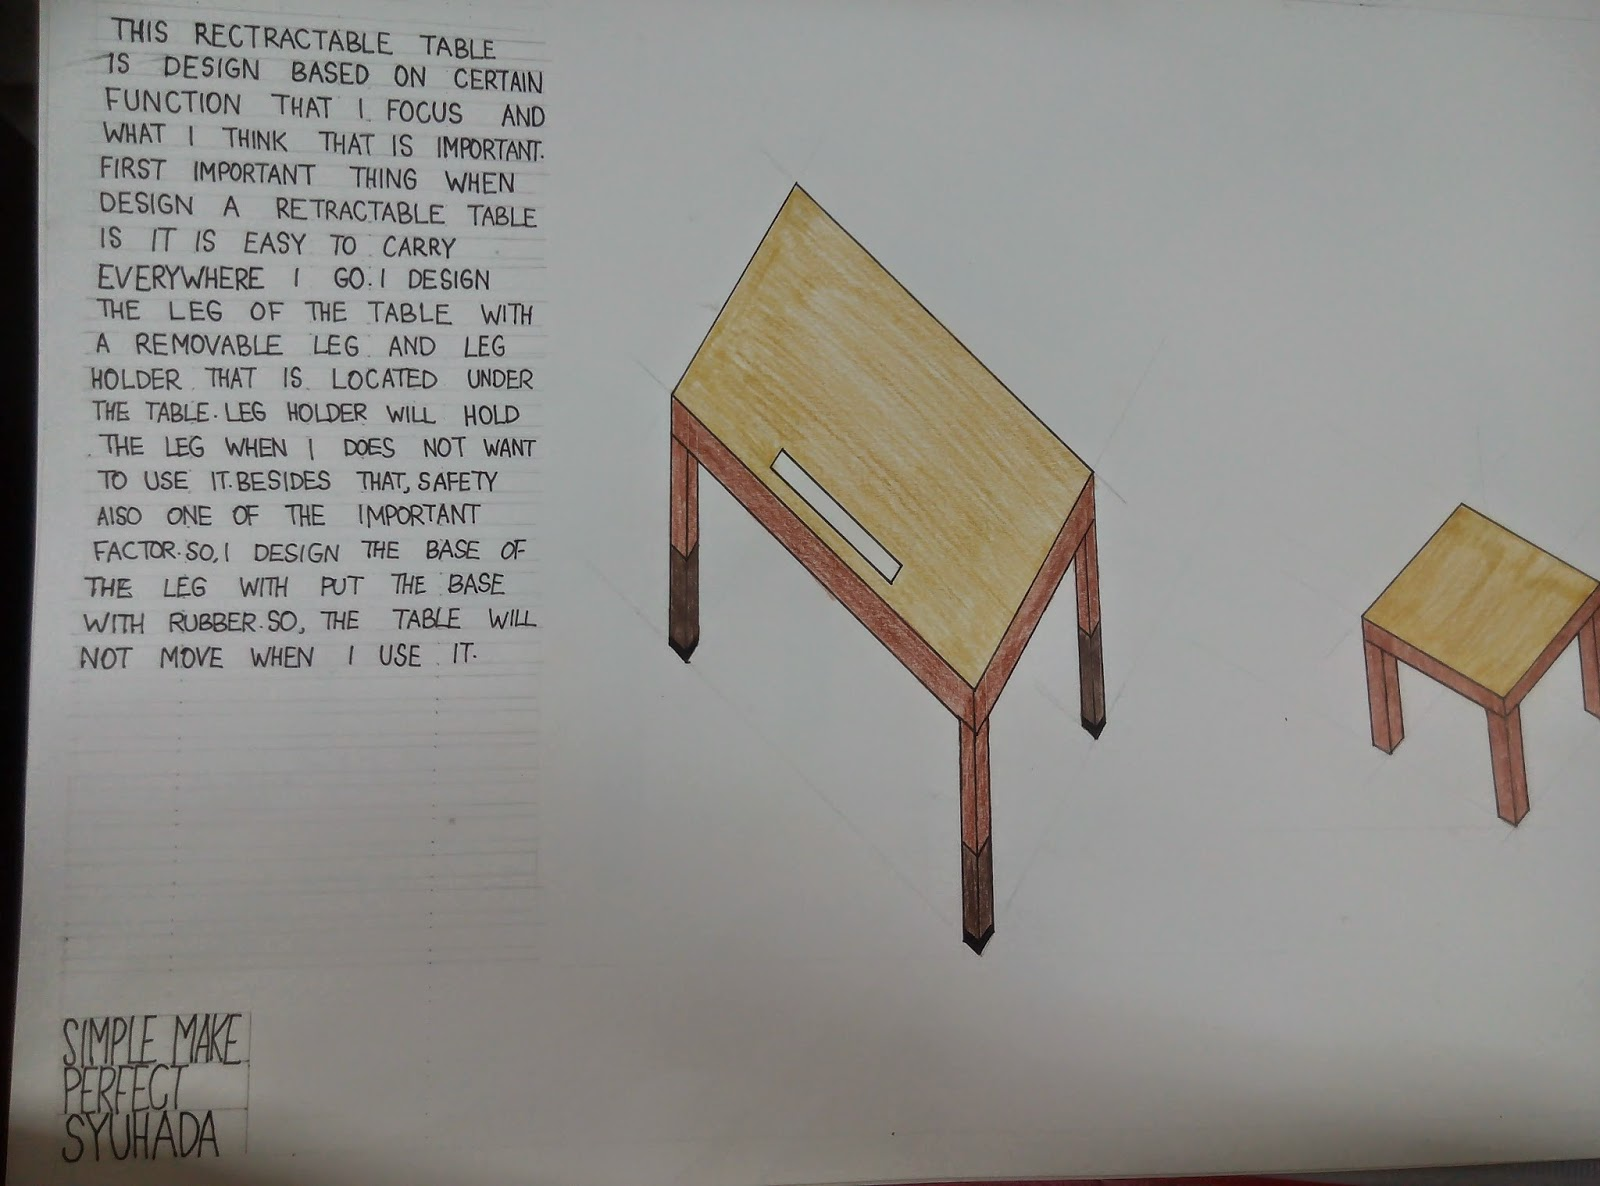 Drawn table Are this including side which